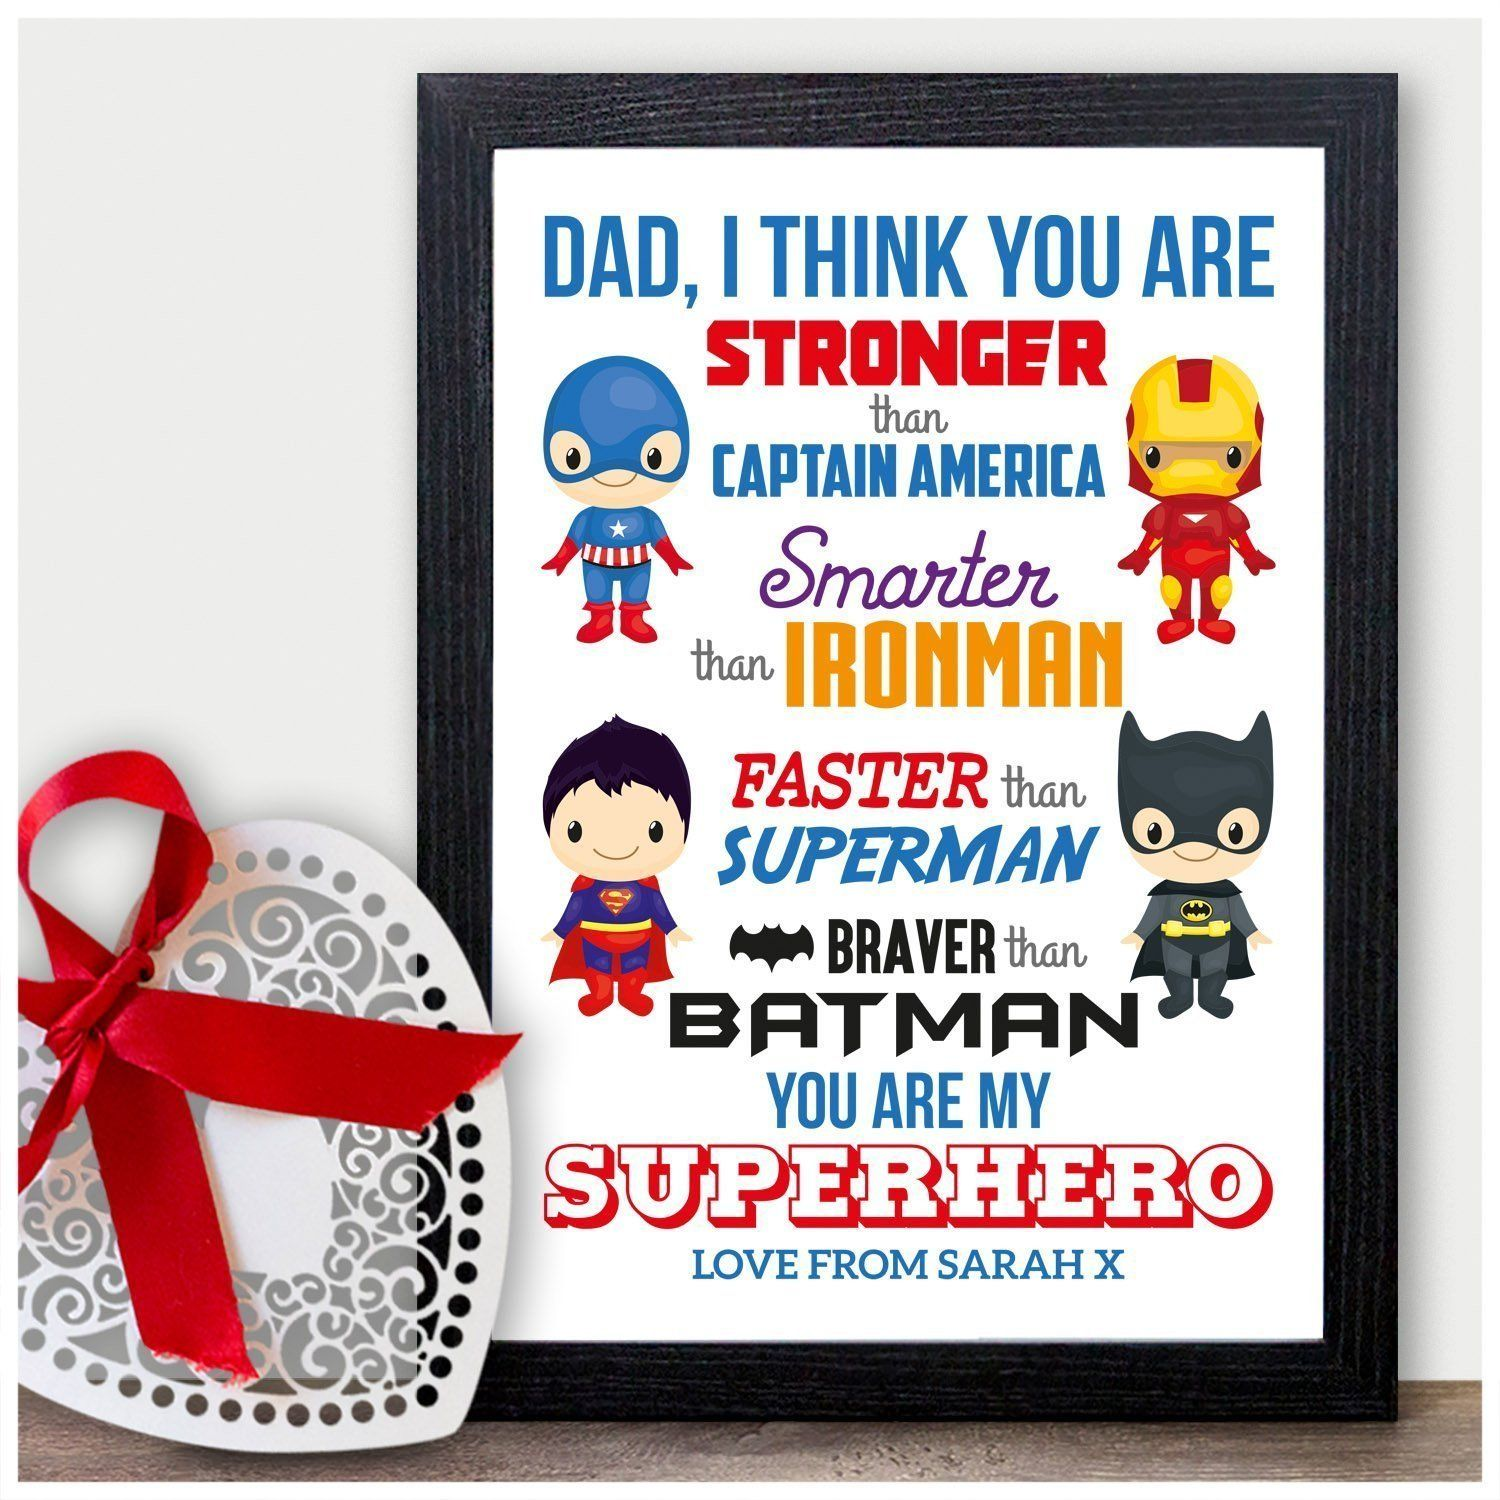 3af78fe08 Gifts for Dad, Stronger than, superhero gift, batman, best Daddy gift,  Super Daddy, Fathers day, dads birthday